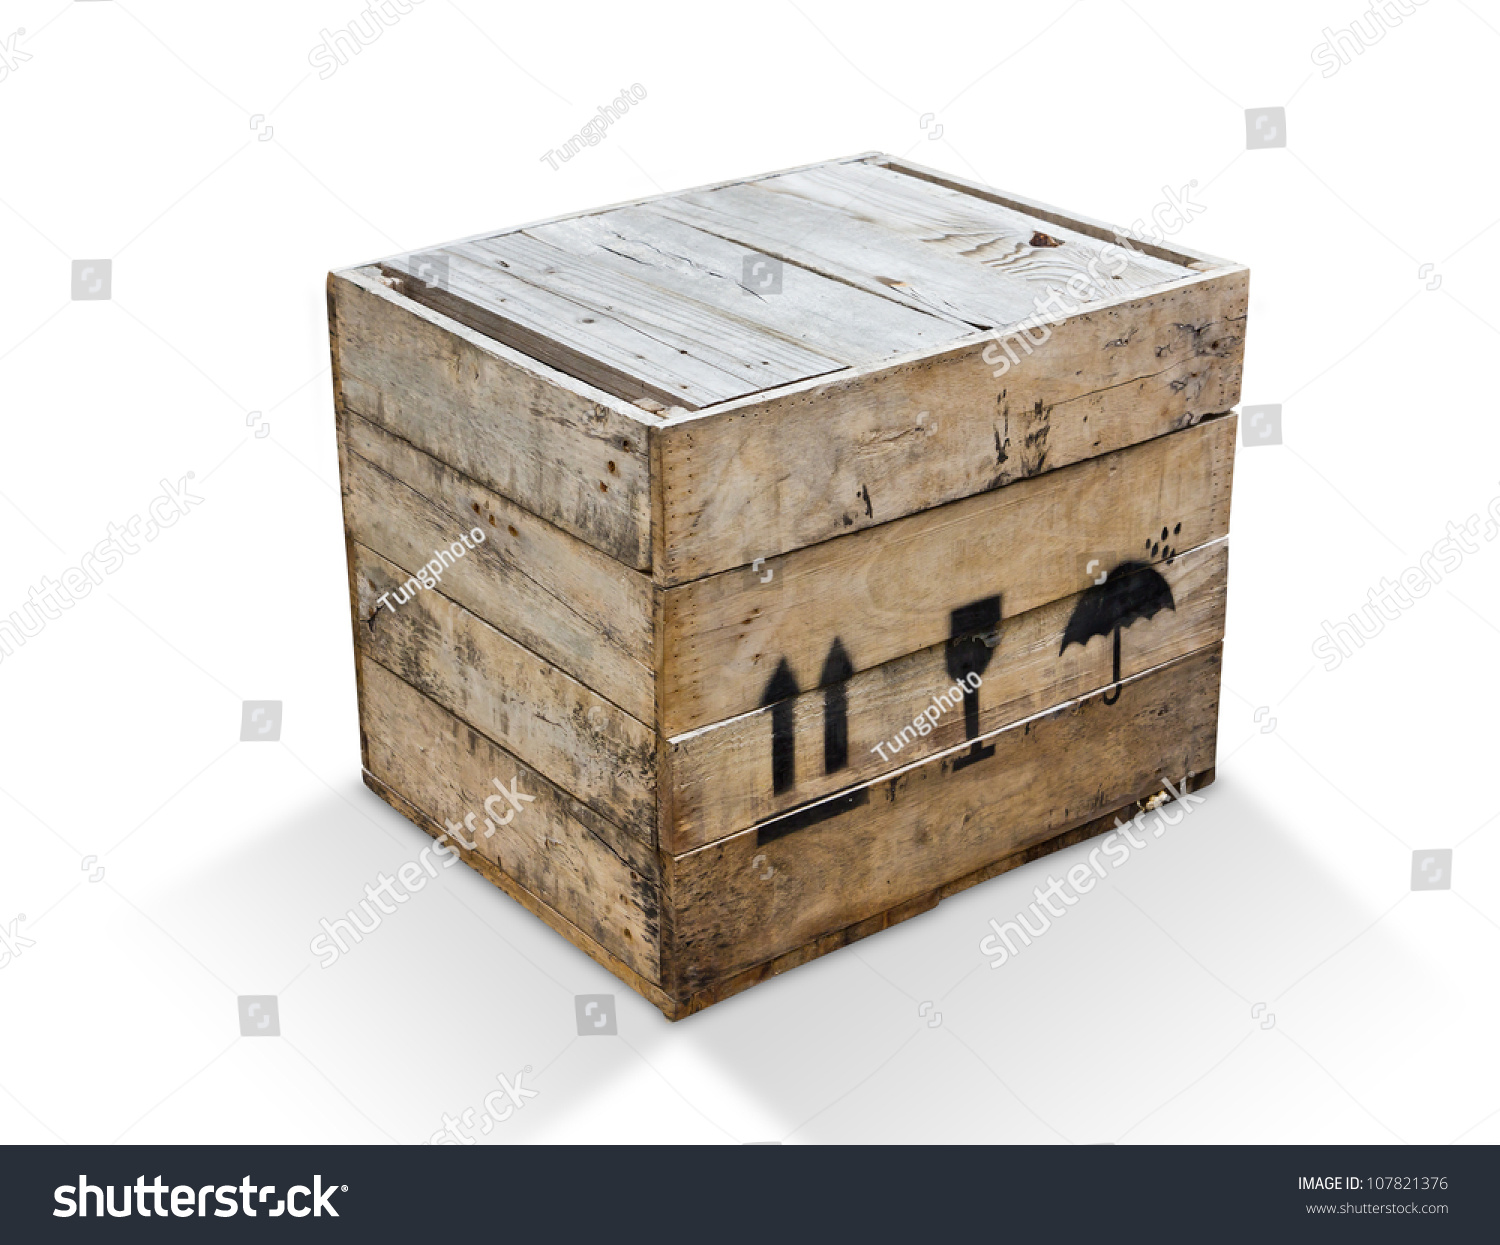 Wood Box Isolated Clipping Path Stockfoto (Jetzt bearbeiten ...